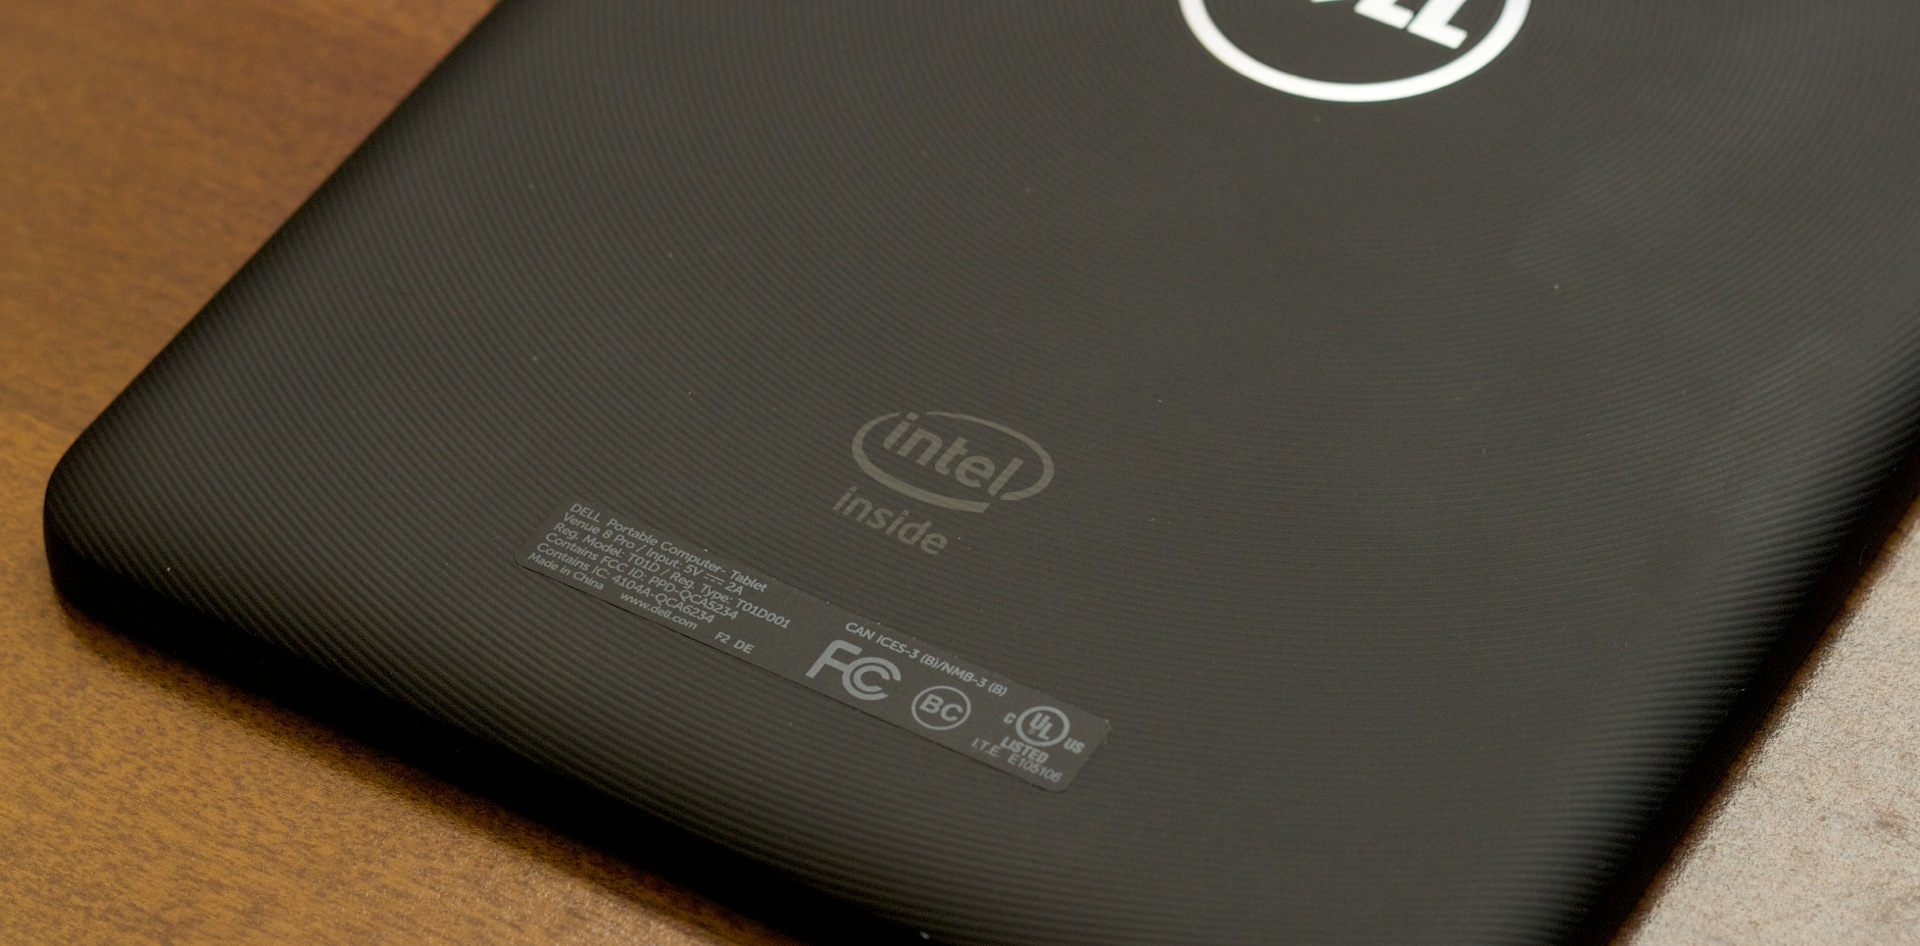 Intels Branding Is Just As Prominent On Tablets It Laptops And Desktops